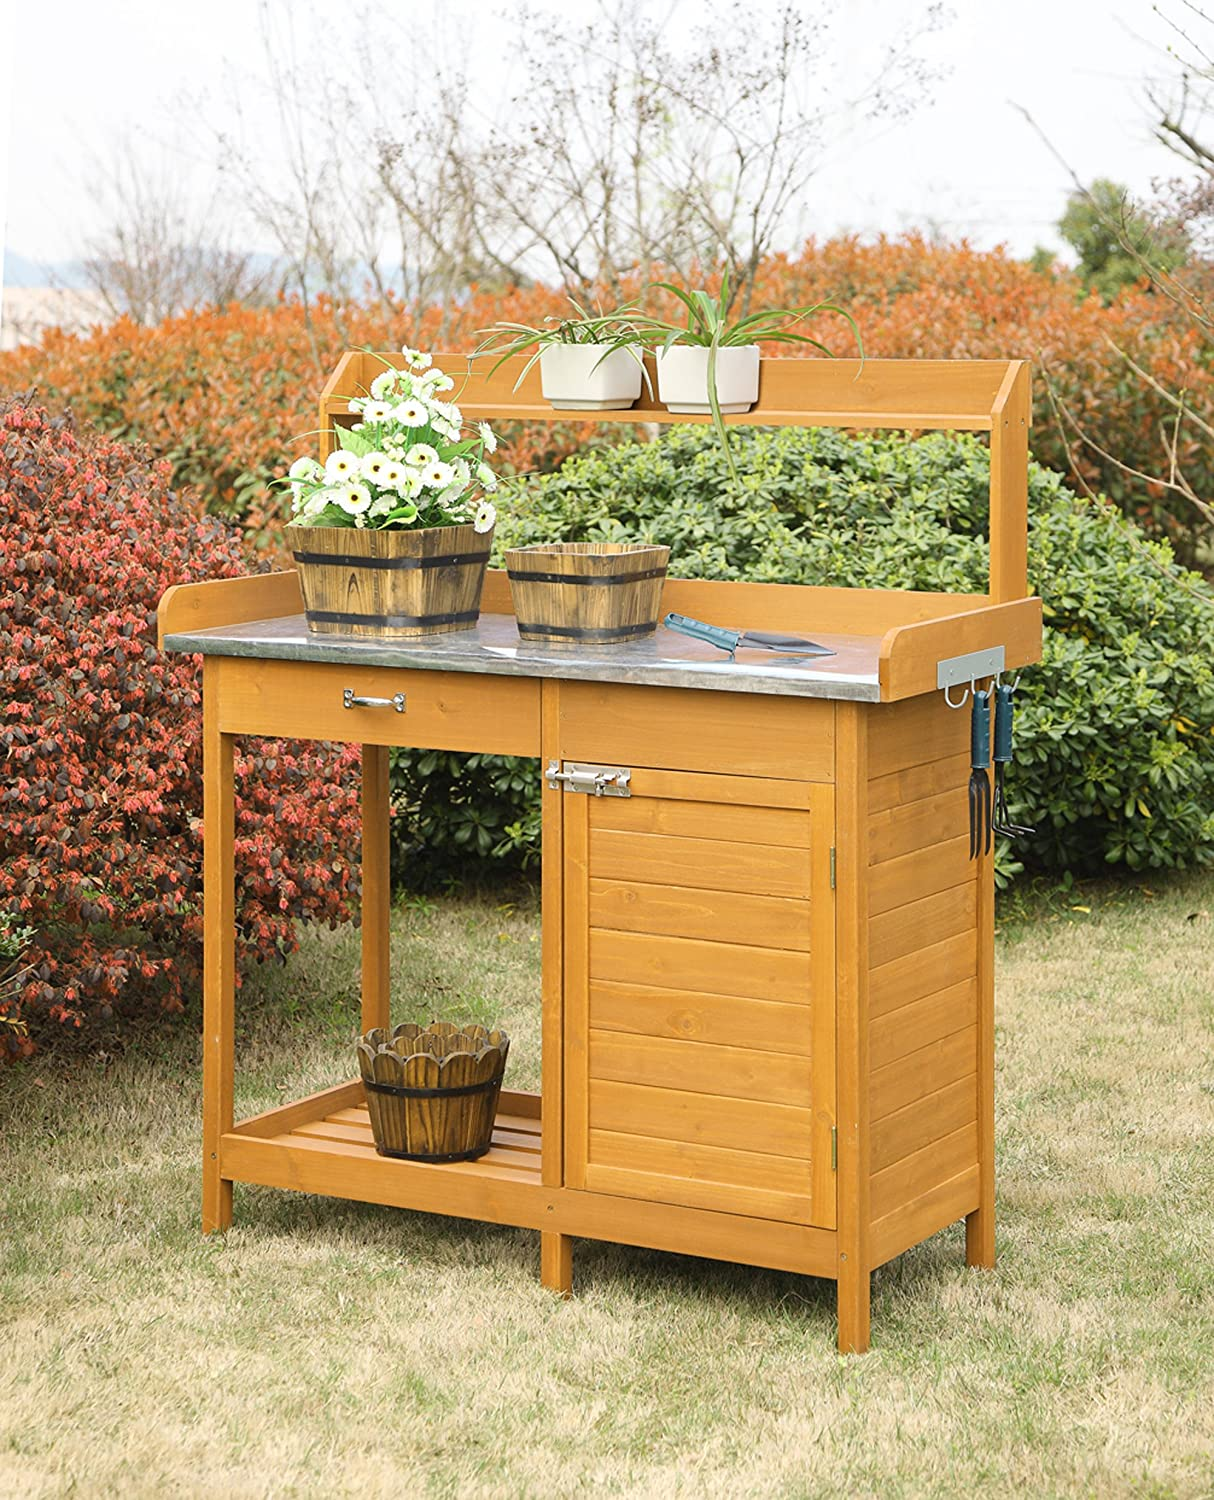 Amazon.com : Convenience Concepts Deluxe Potting Bench With ...